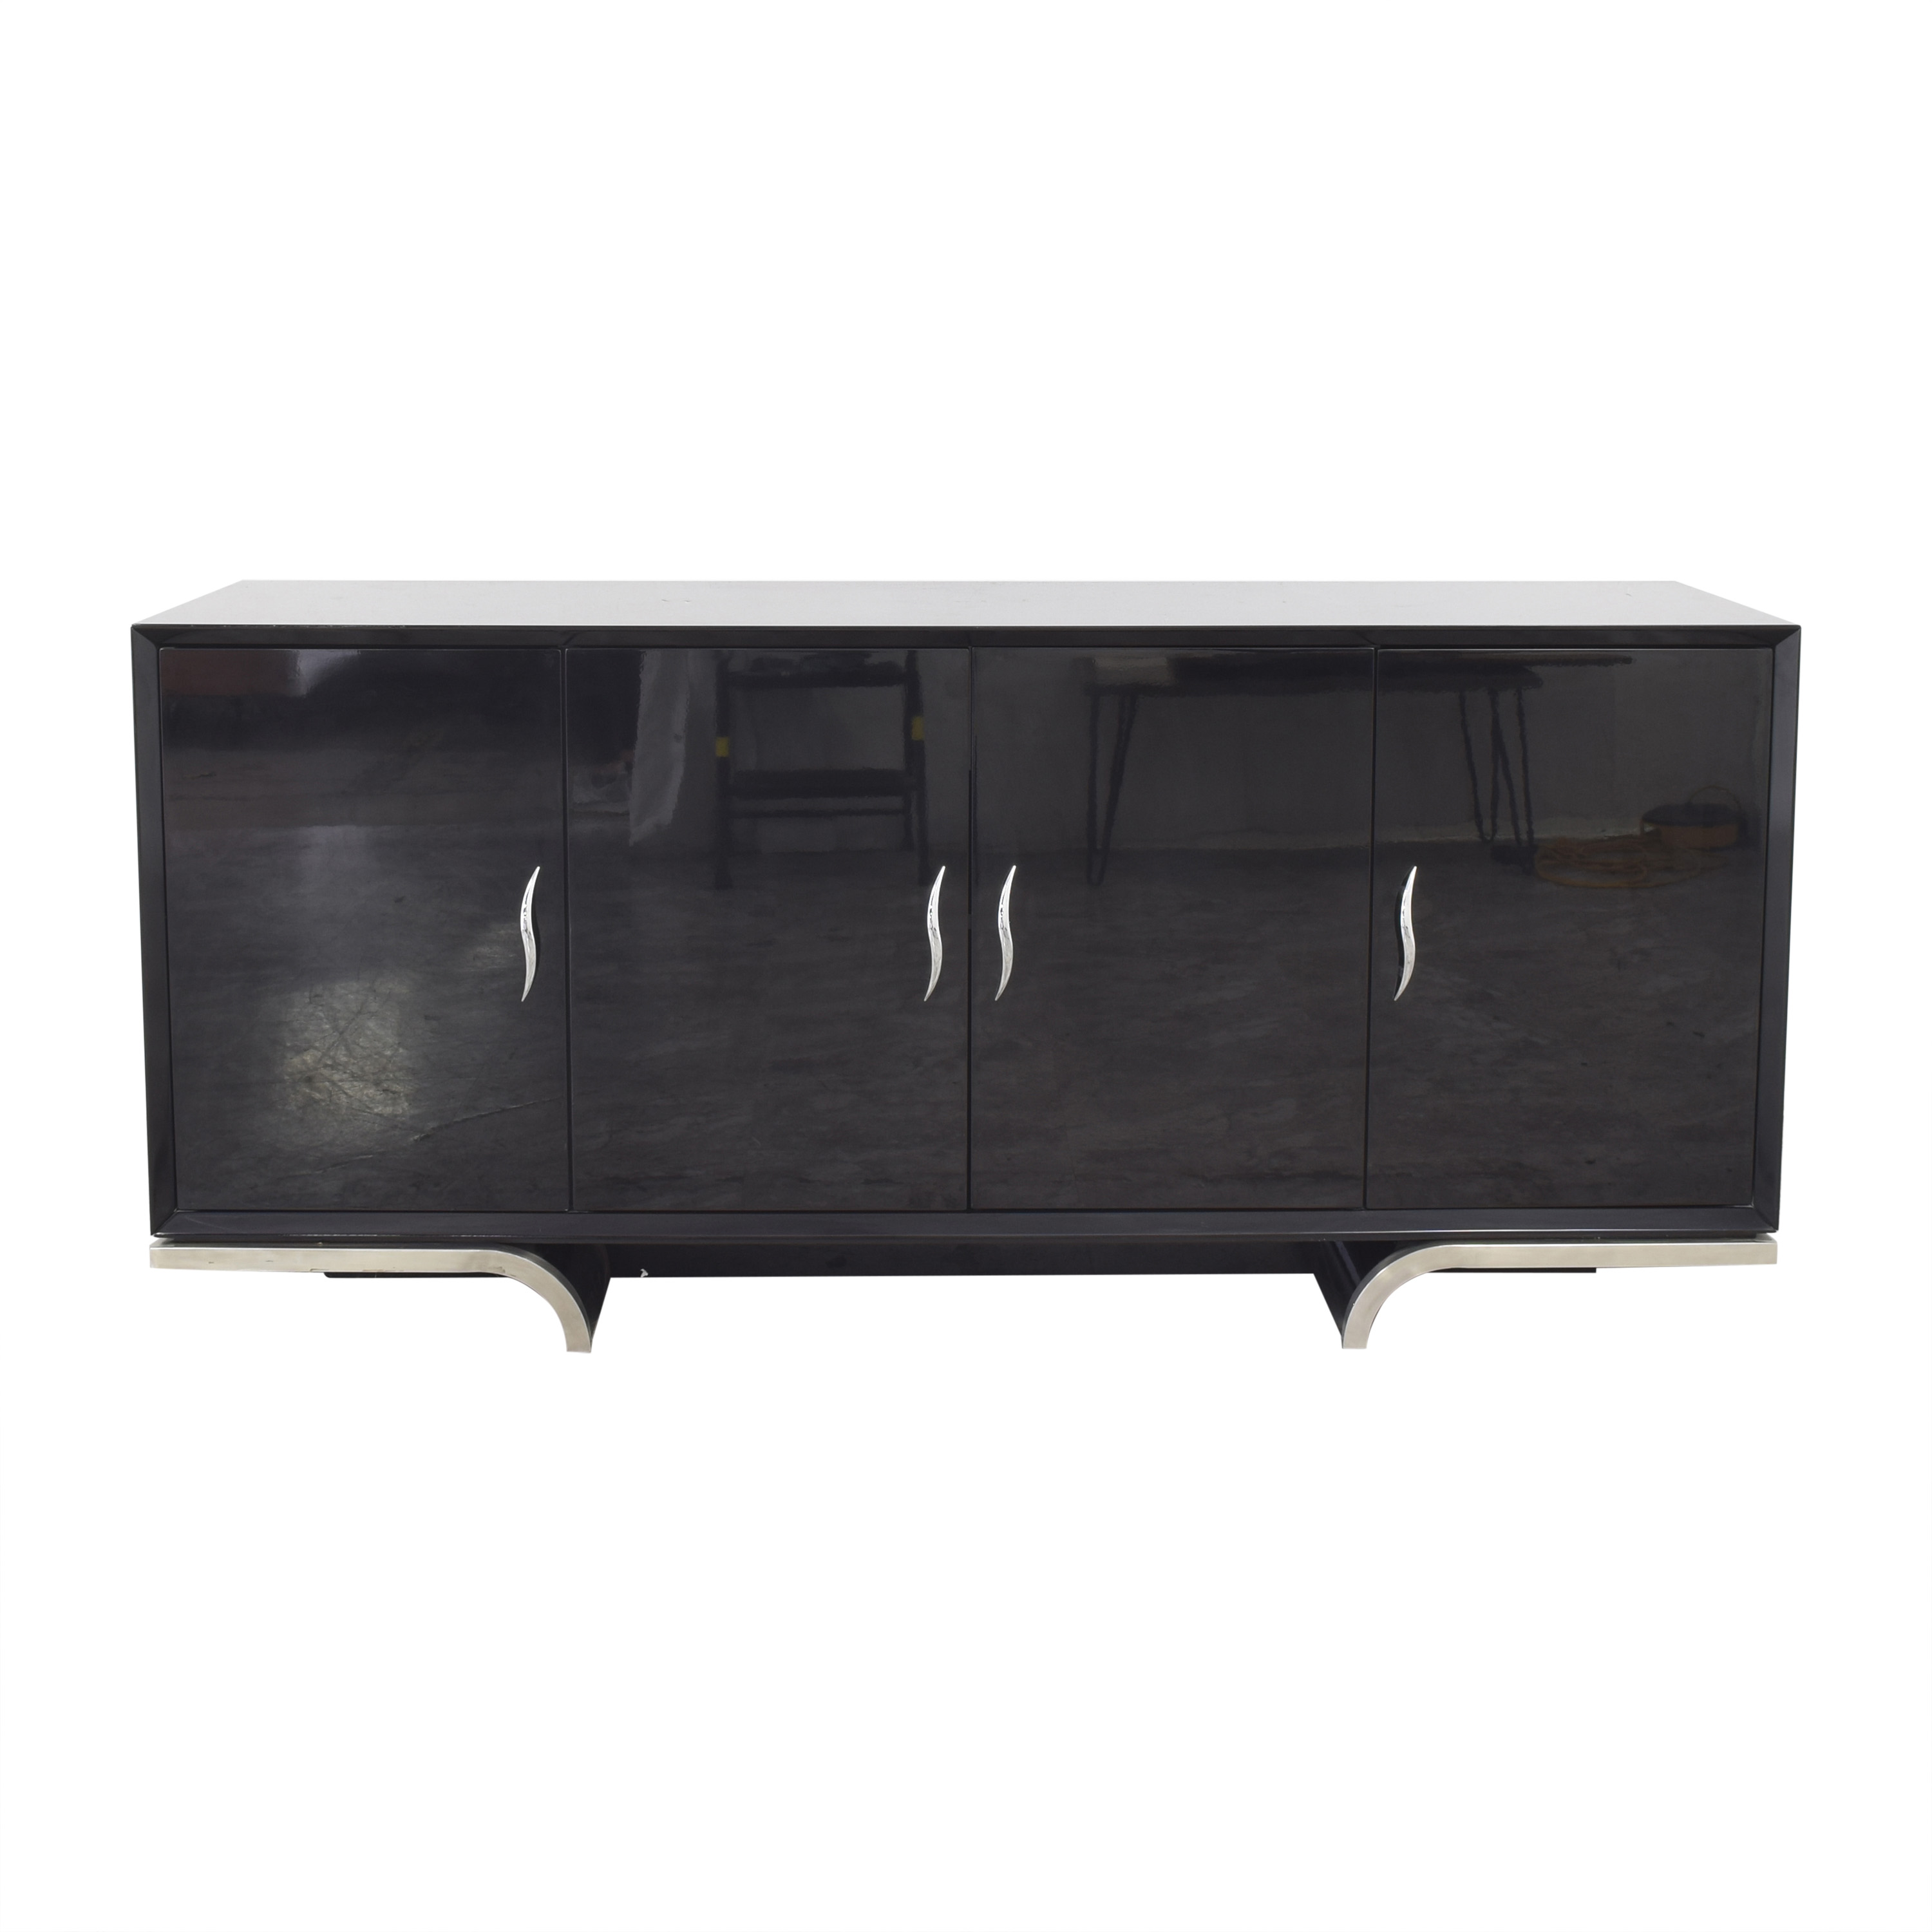 Four Door Sideboard Buffet Cabinets & Sideboards